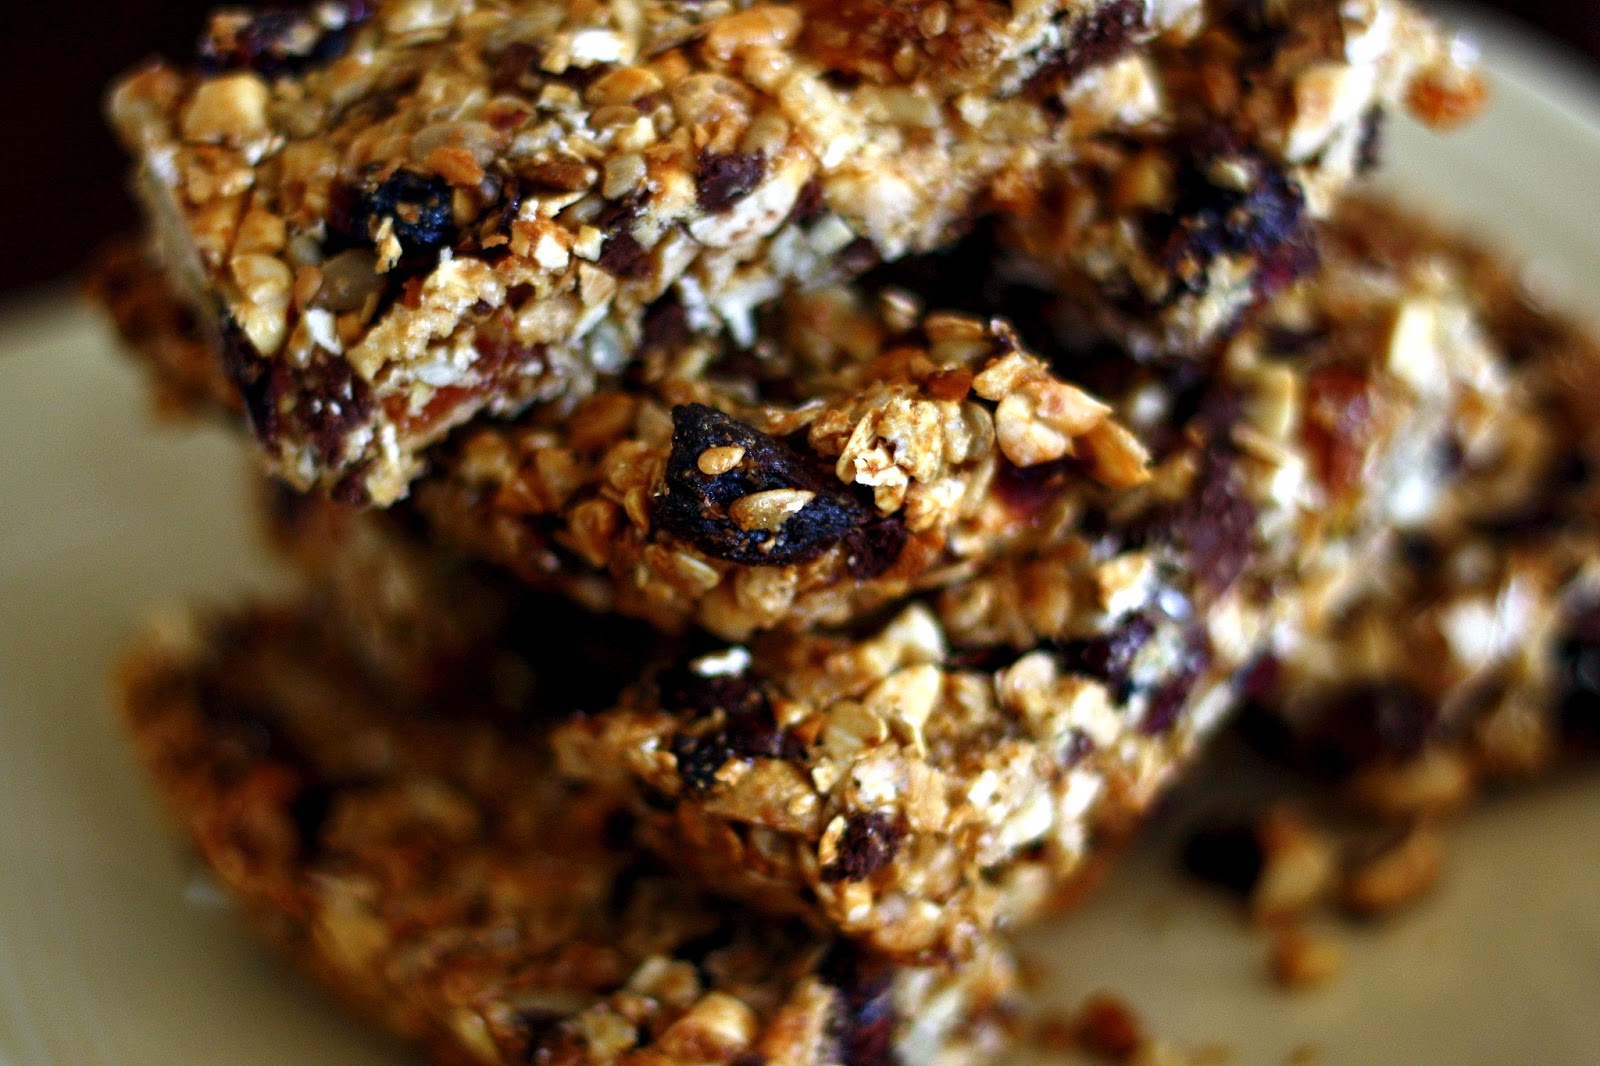 ve made dozens of batches of granola bars in the last year and half ...